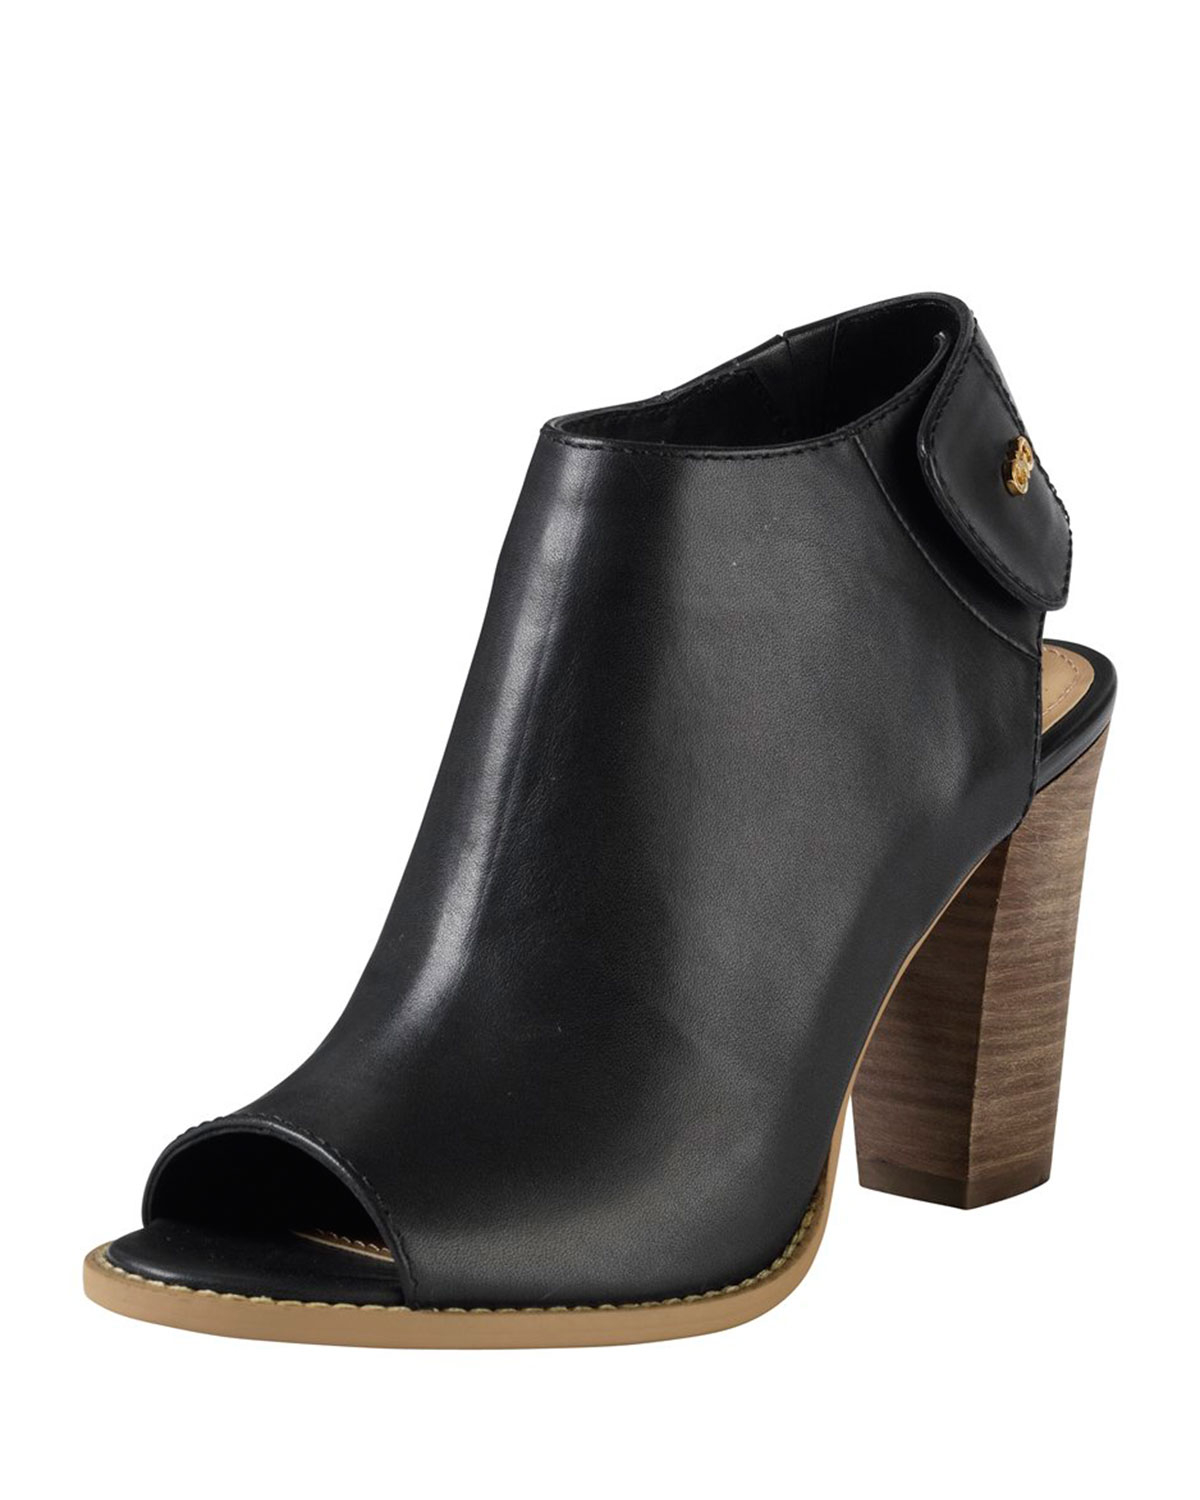 Black Leather Bootie Shoes